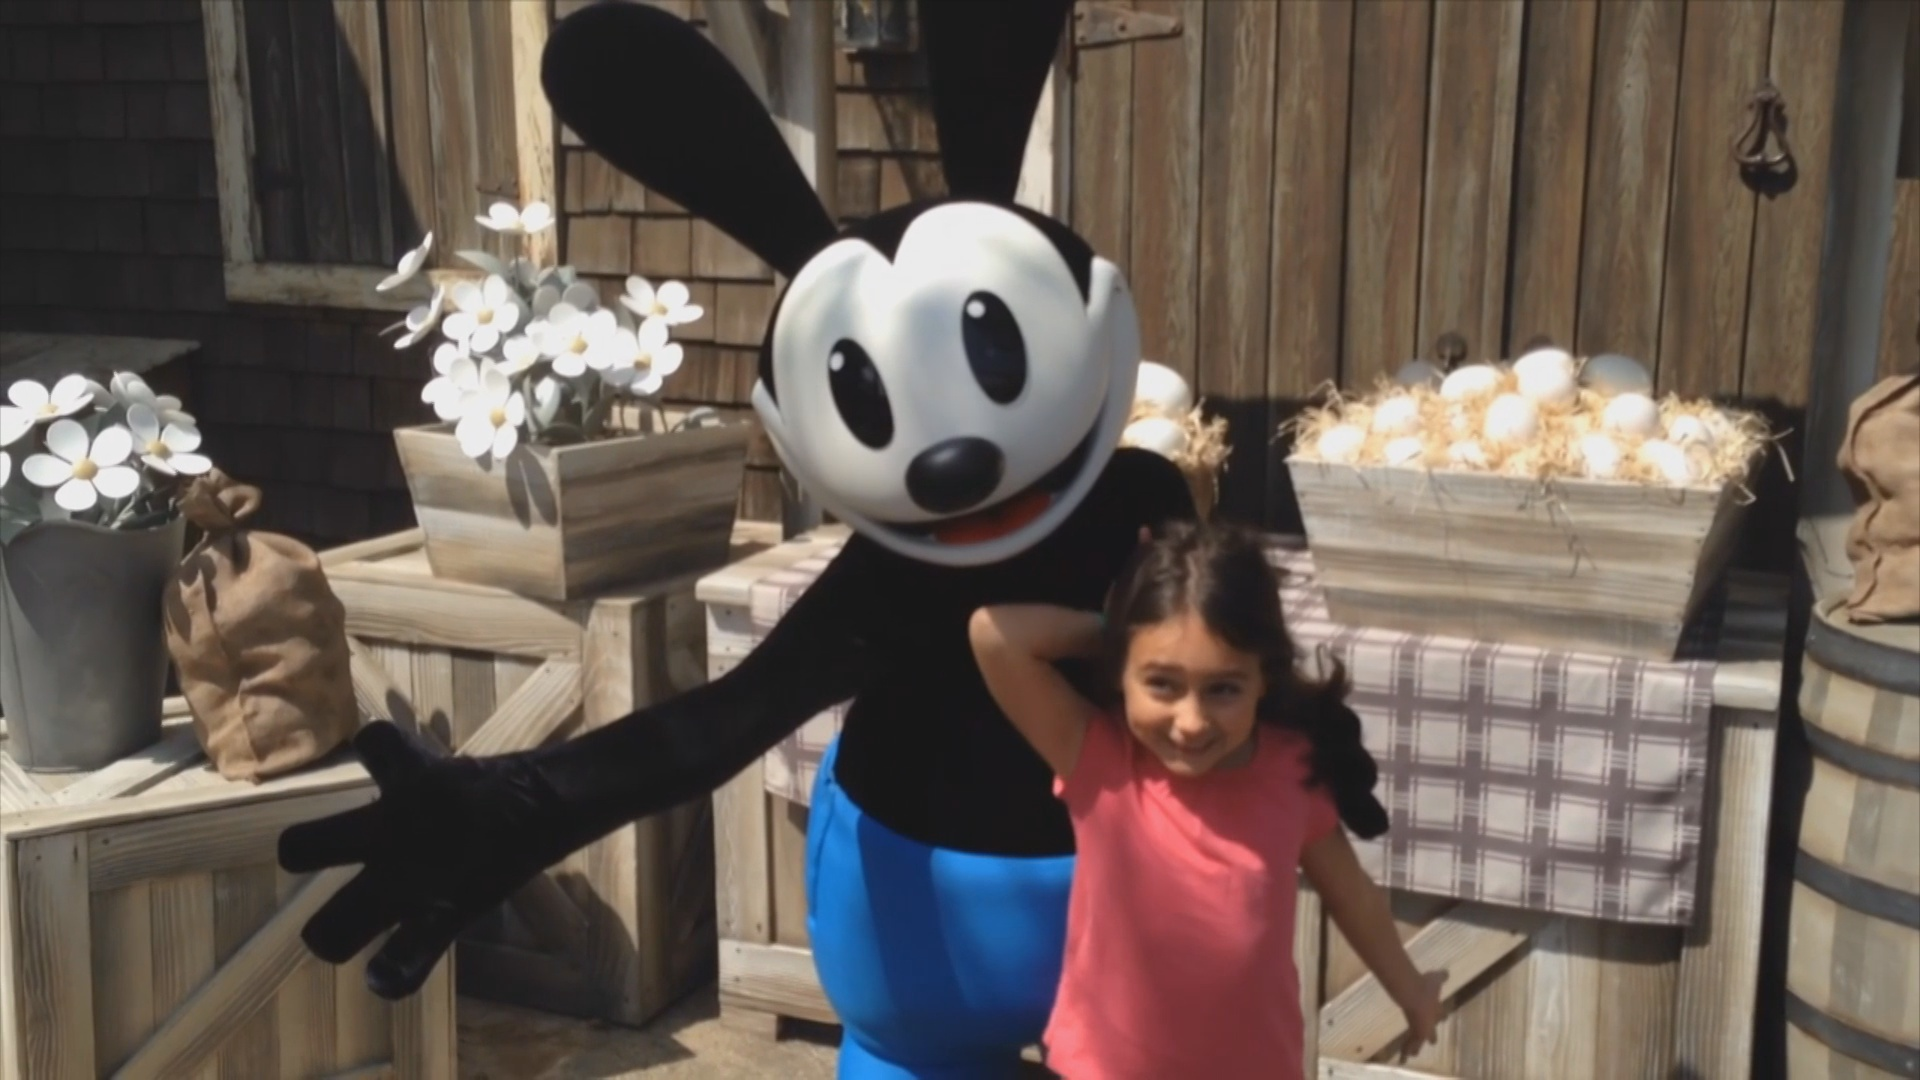 Fall Themed Wallpaper Oswald The Lucky Rabbit Makes Disney Parks Debut At Tokyo